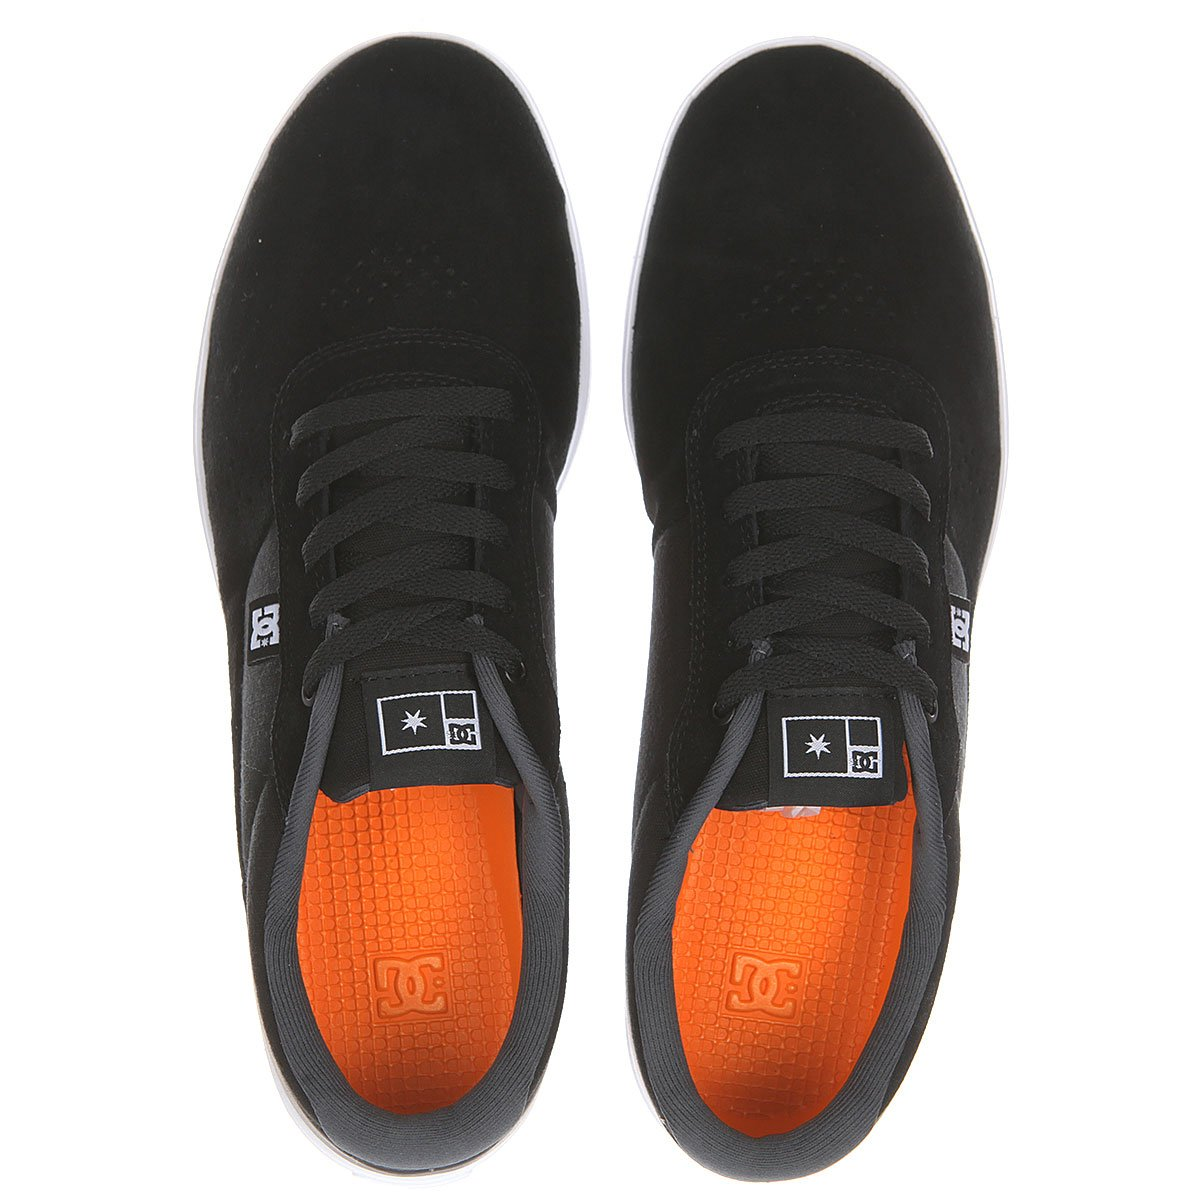 Низкие Кеды Dc Switch S M Shoe Fw17 Black/orange 7,5